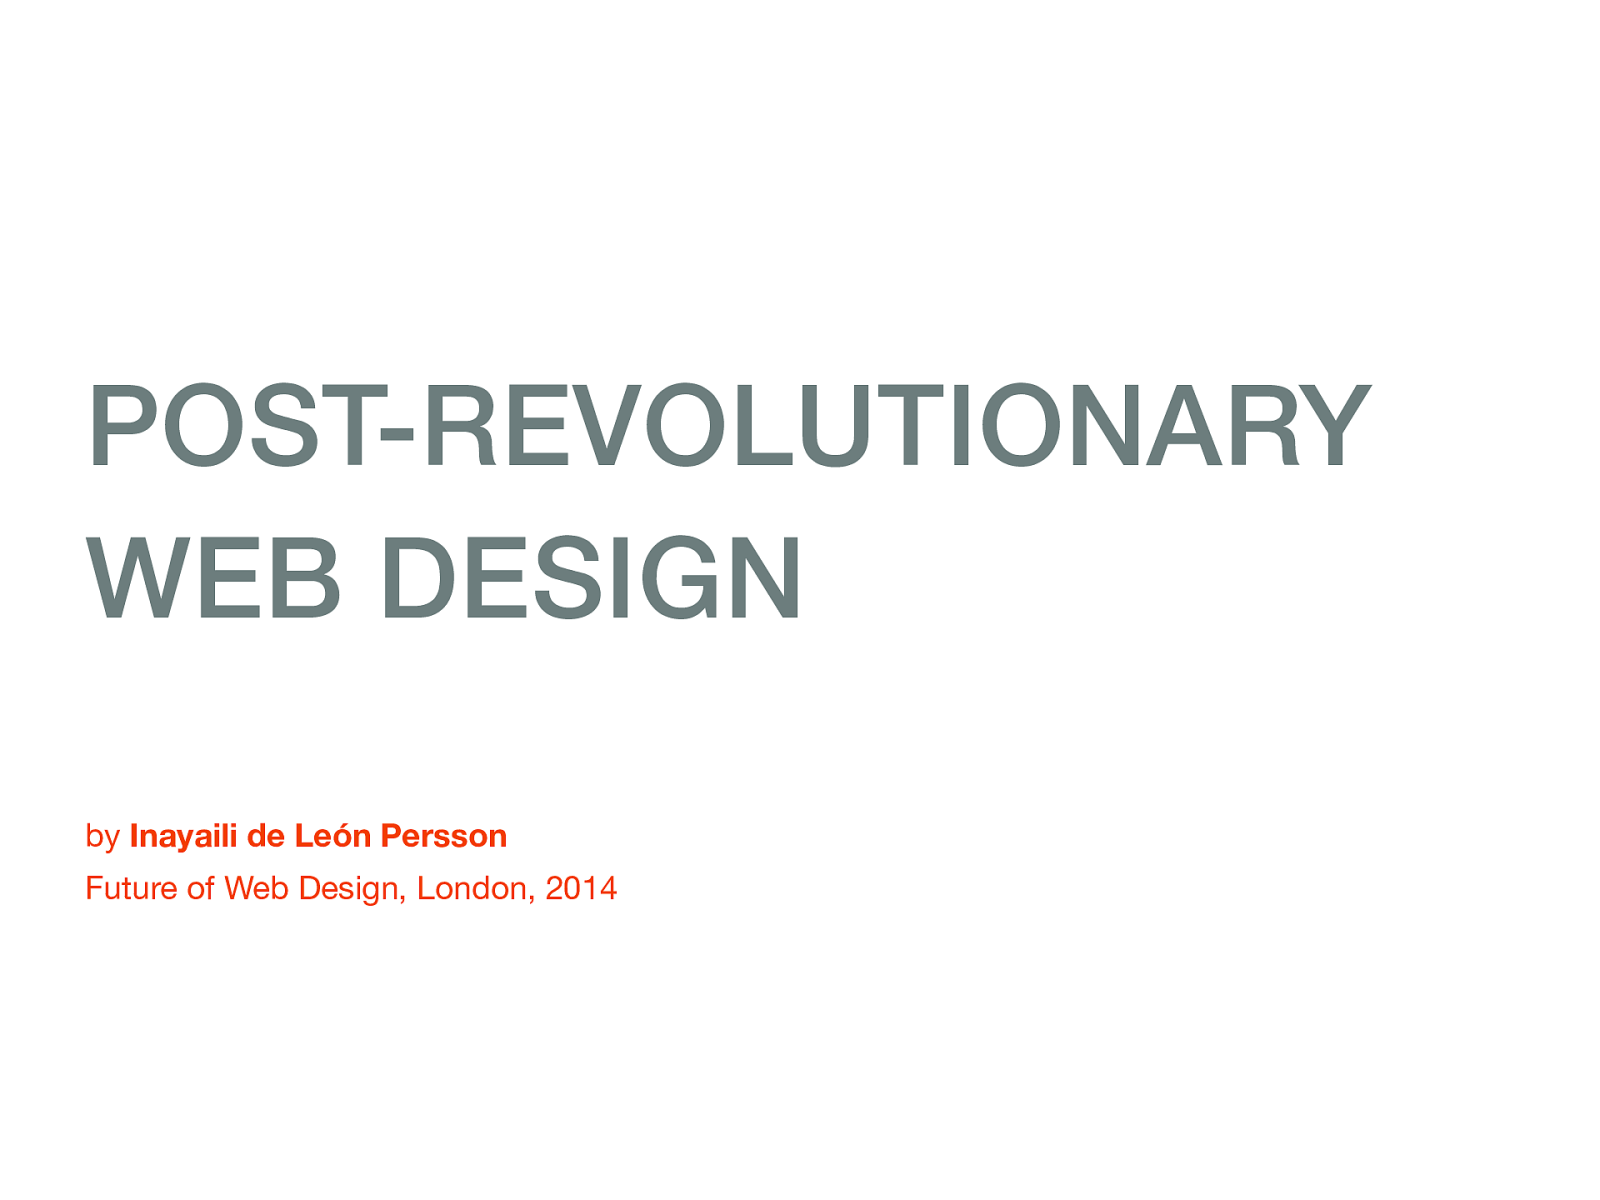 Post-revolutionary web design